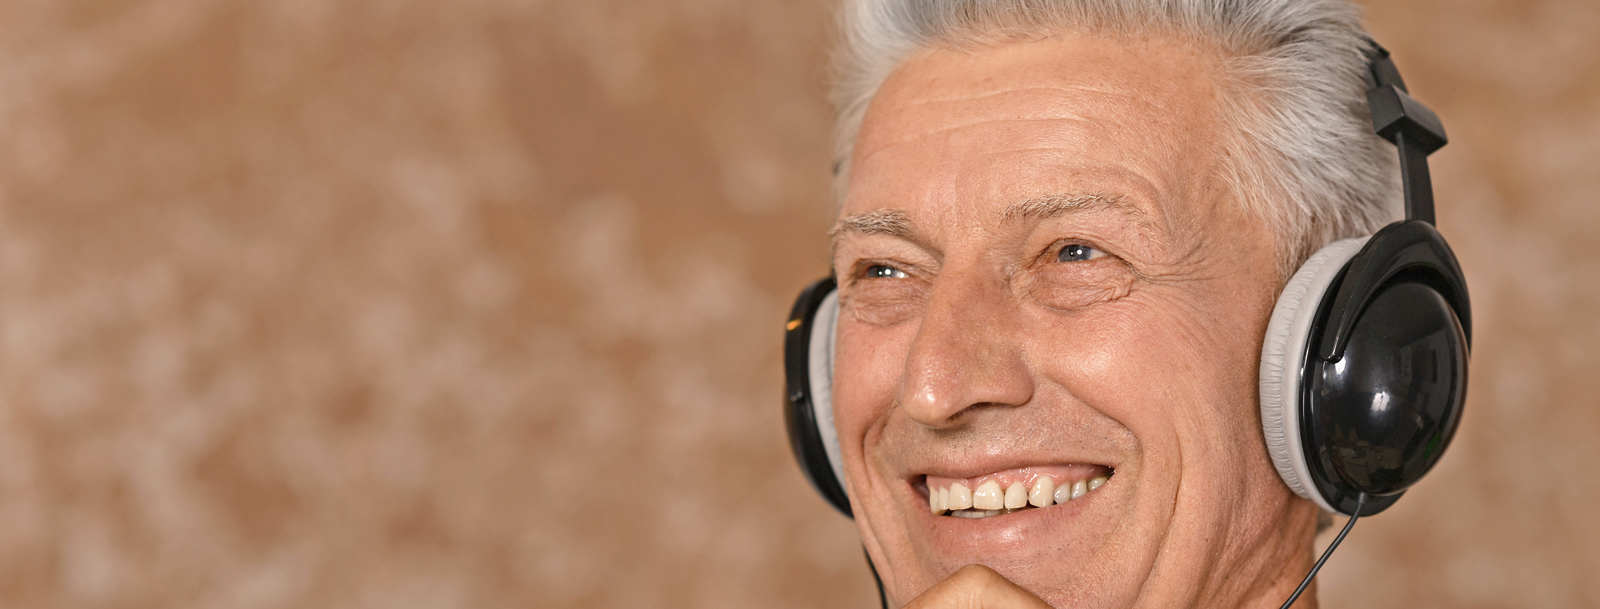 Resident listening to music at